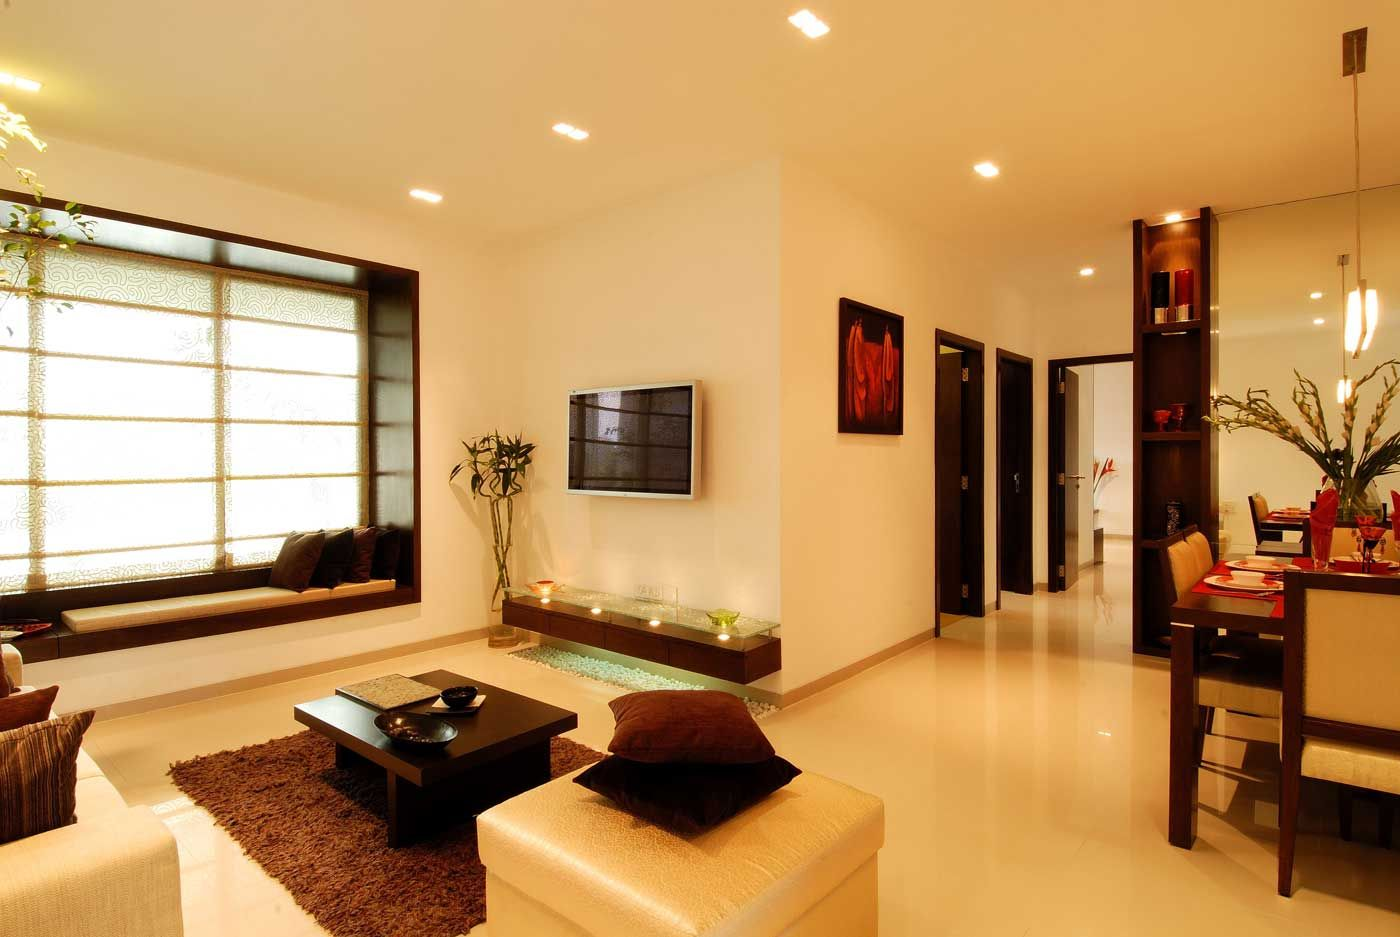 Properties in andheri flats in andheri east mumbai for 1 bhk interior design cost